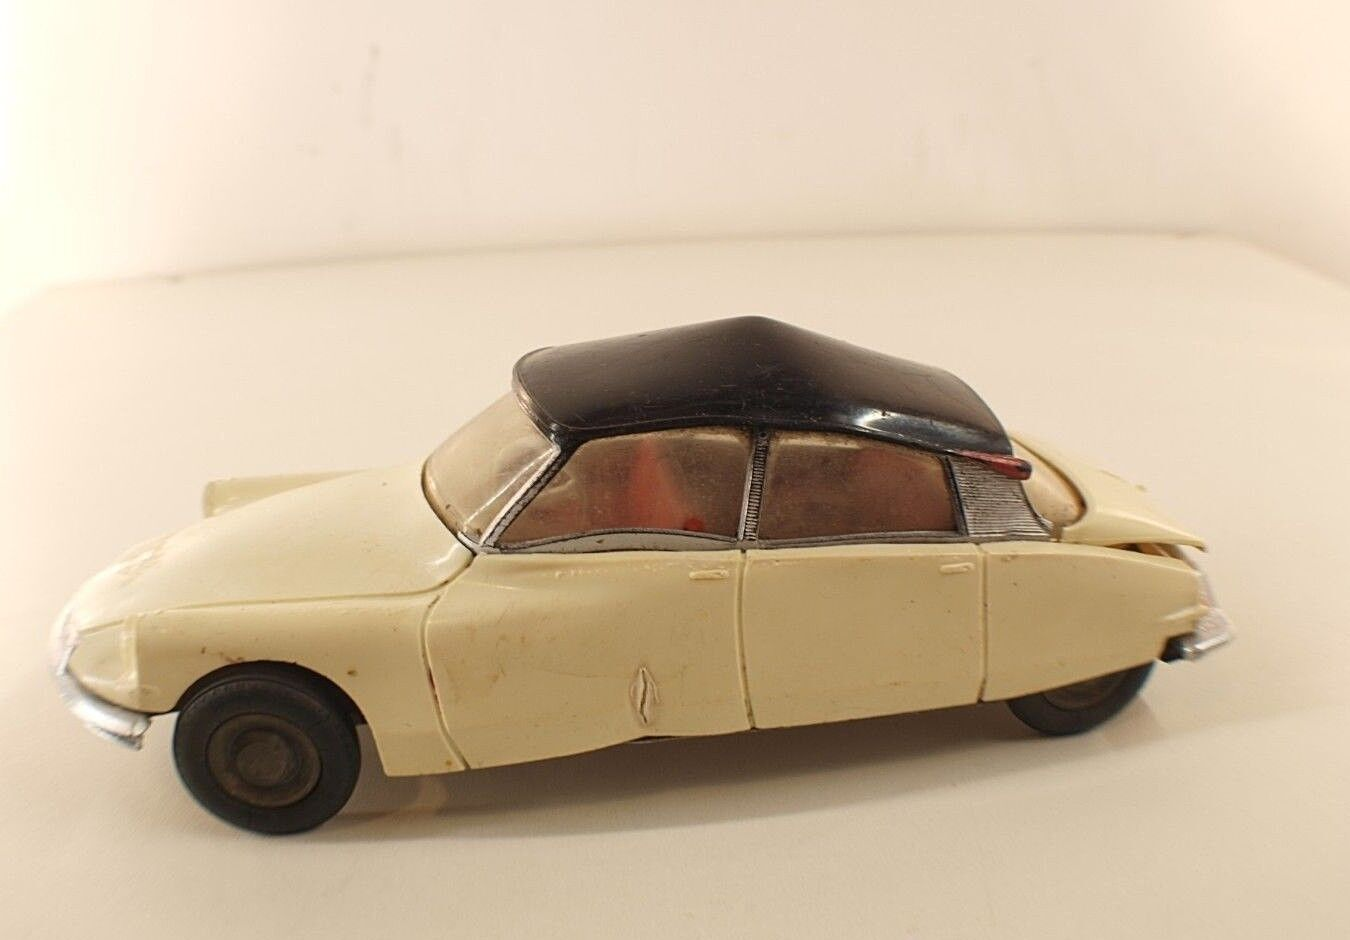 JEP France n° 7374 Citroën DS 19 de 1957 friction plastique 22 cm RARE toy car